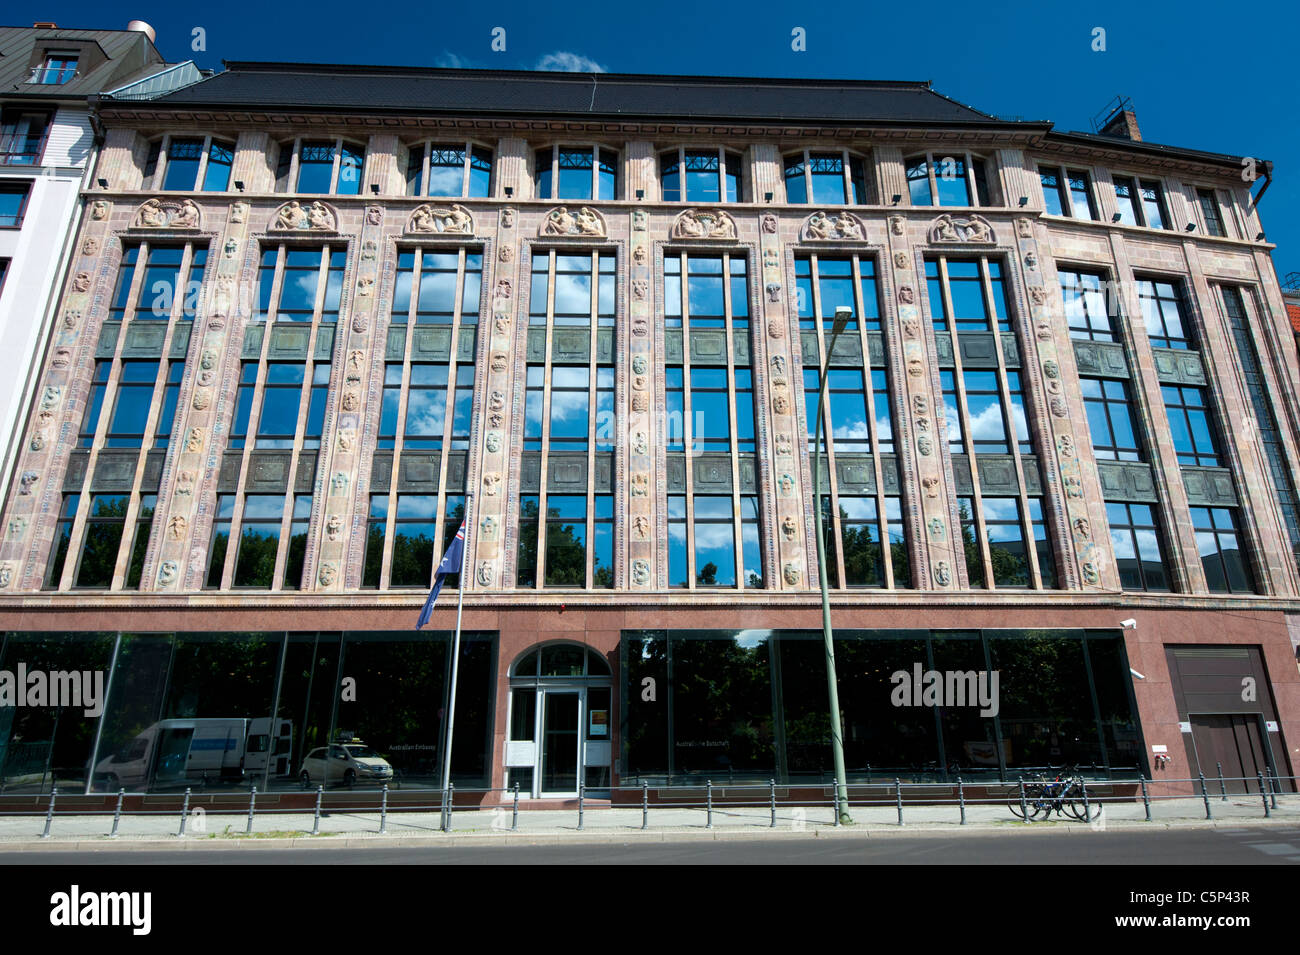 Australian Embassy Exterior Of Australian Embassy In Berlin Germany Stock Photo